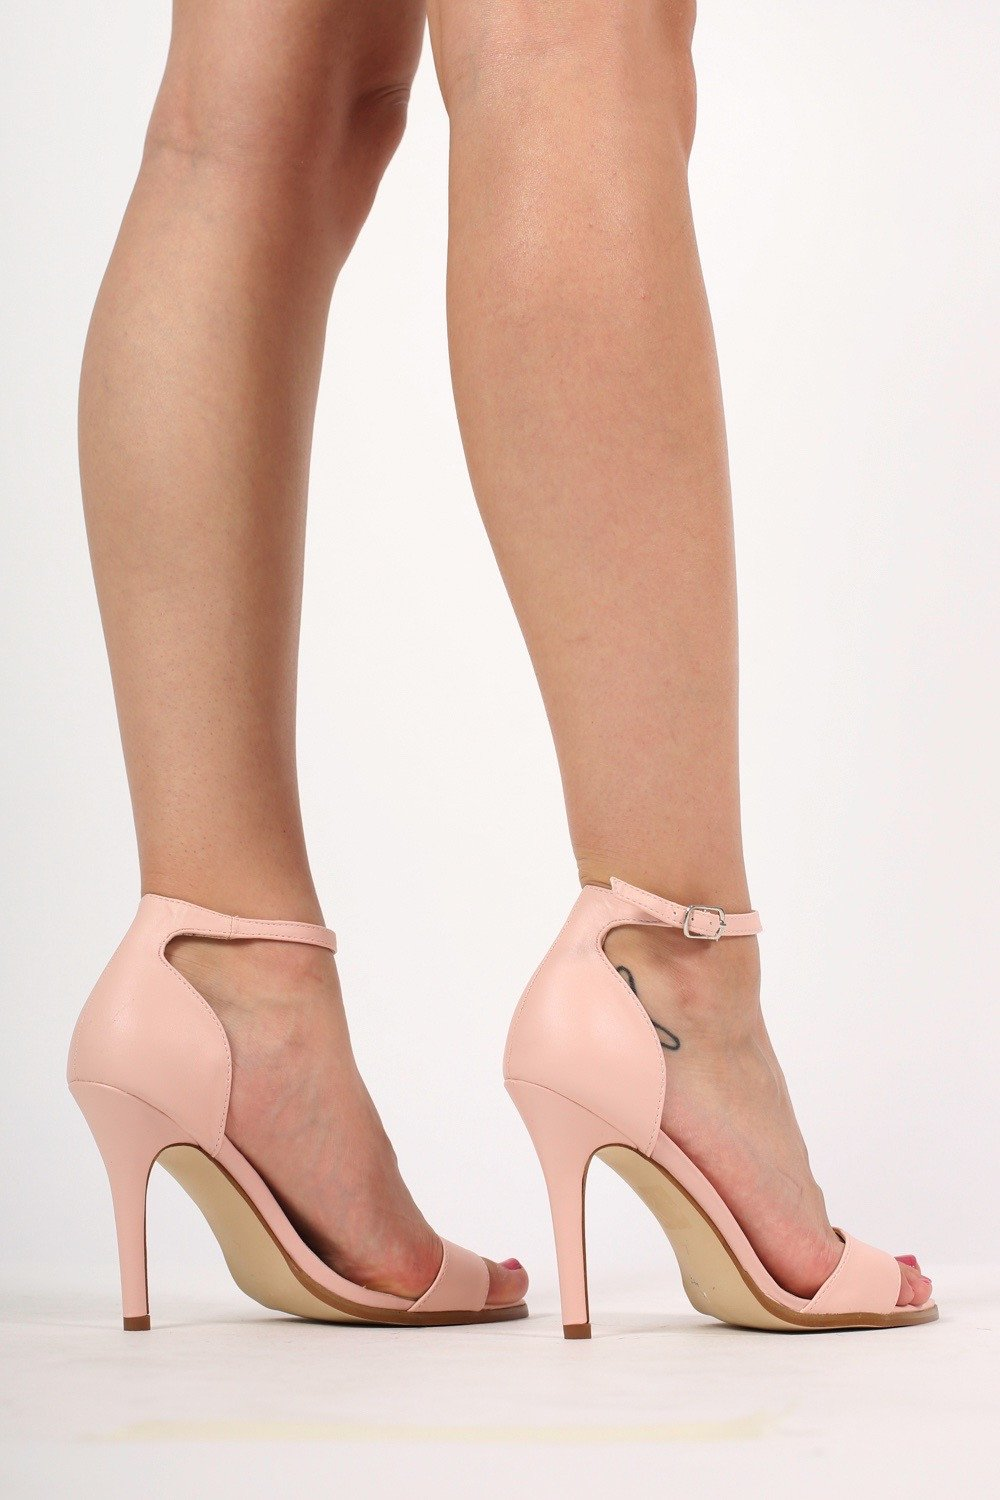 0b0b6ef75ba Maya Barely There Strappy High Heel Sandals in Pale Pink MODEL SIDE 2